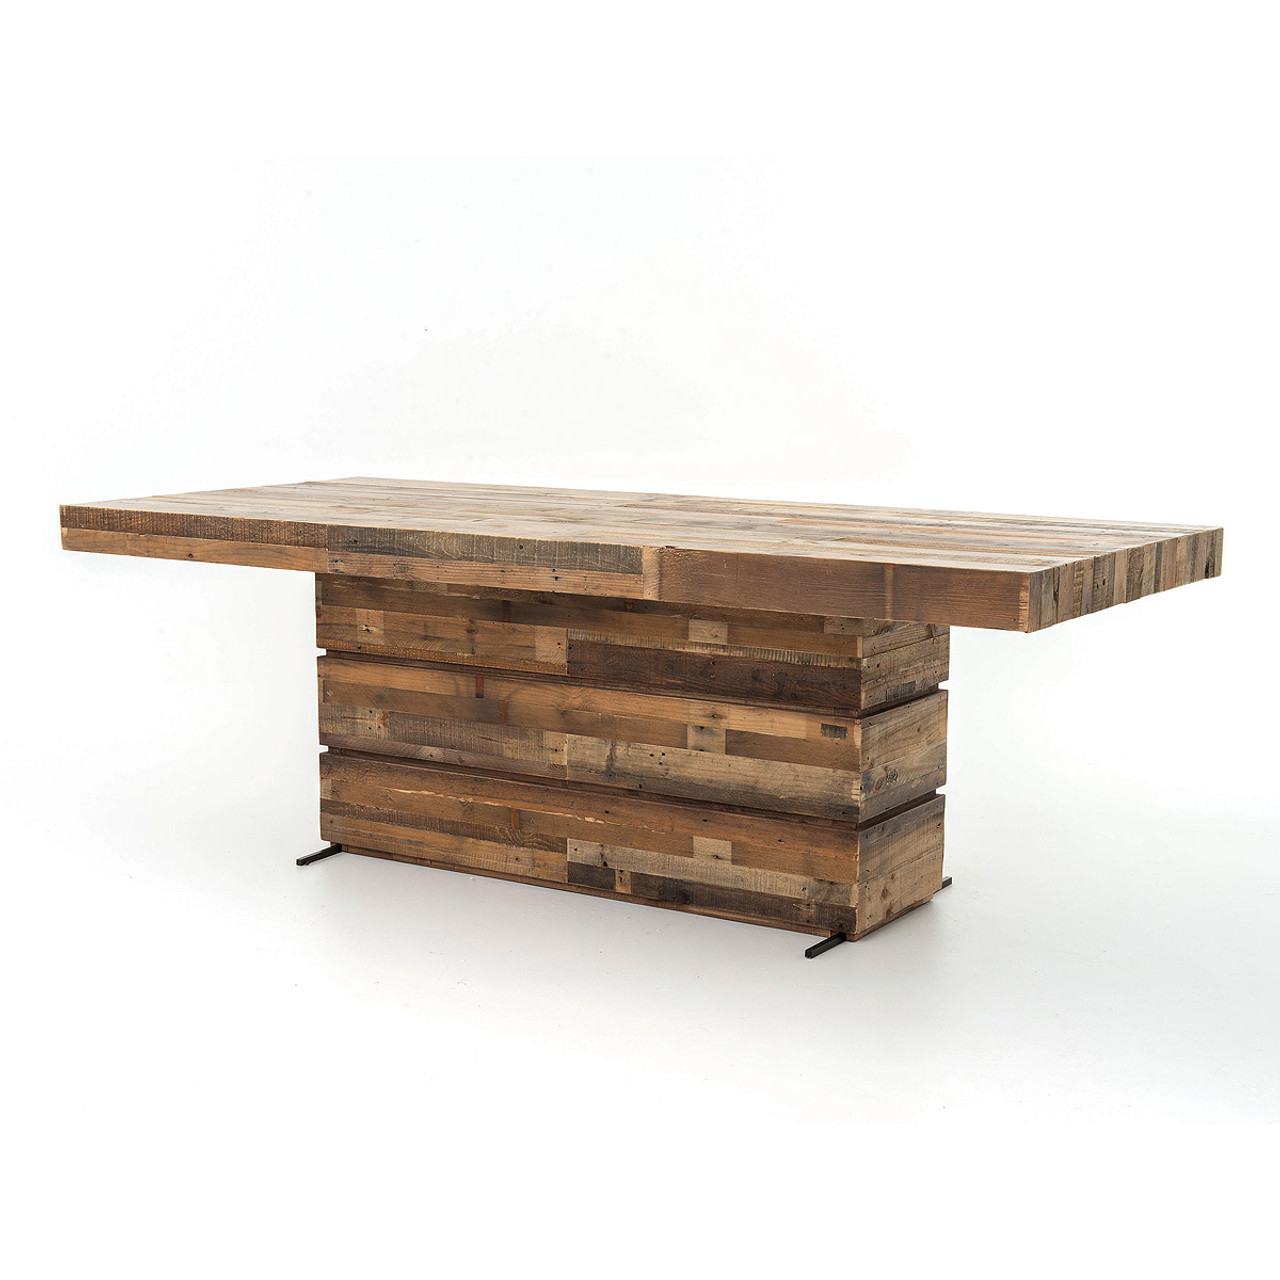 Angora Rustic Reclaimed Wood Dining Table 89 Zin Home